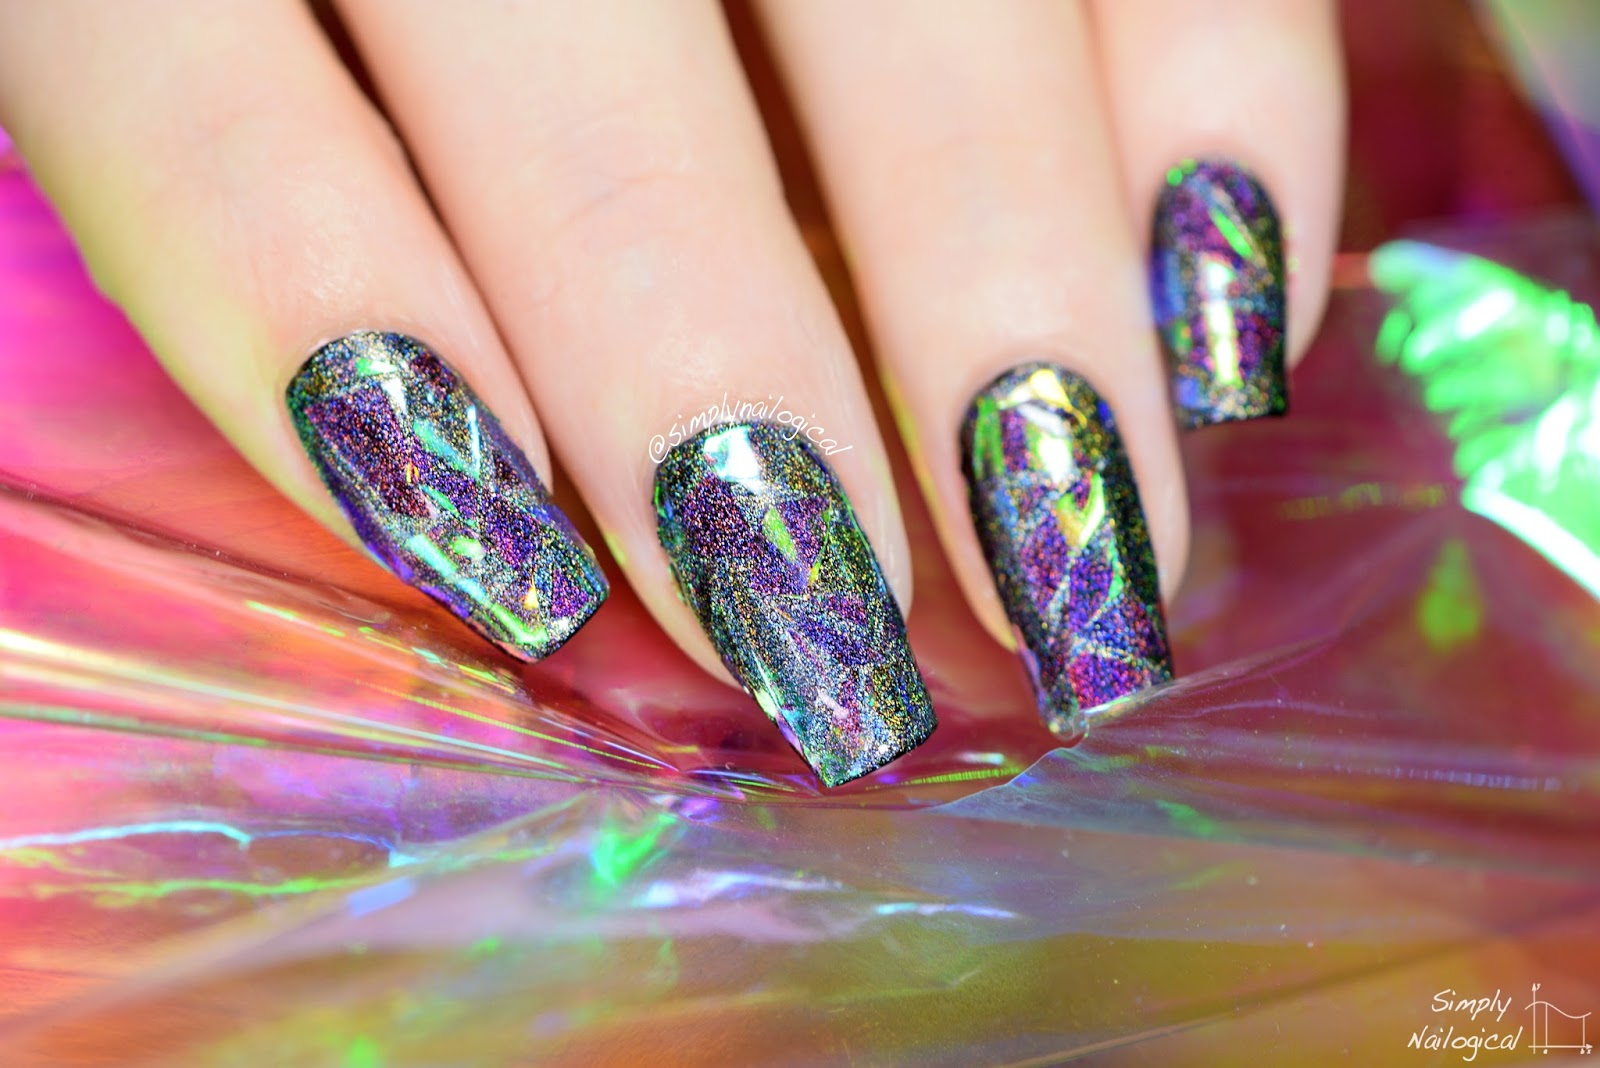 Holographic Shattered Glass Nails So Badass Rn